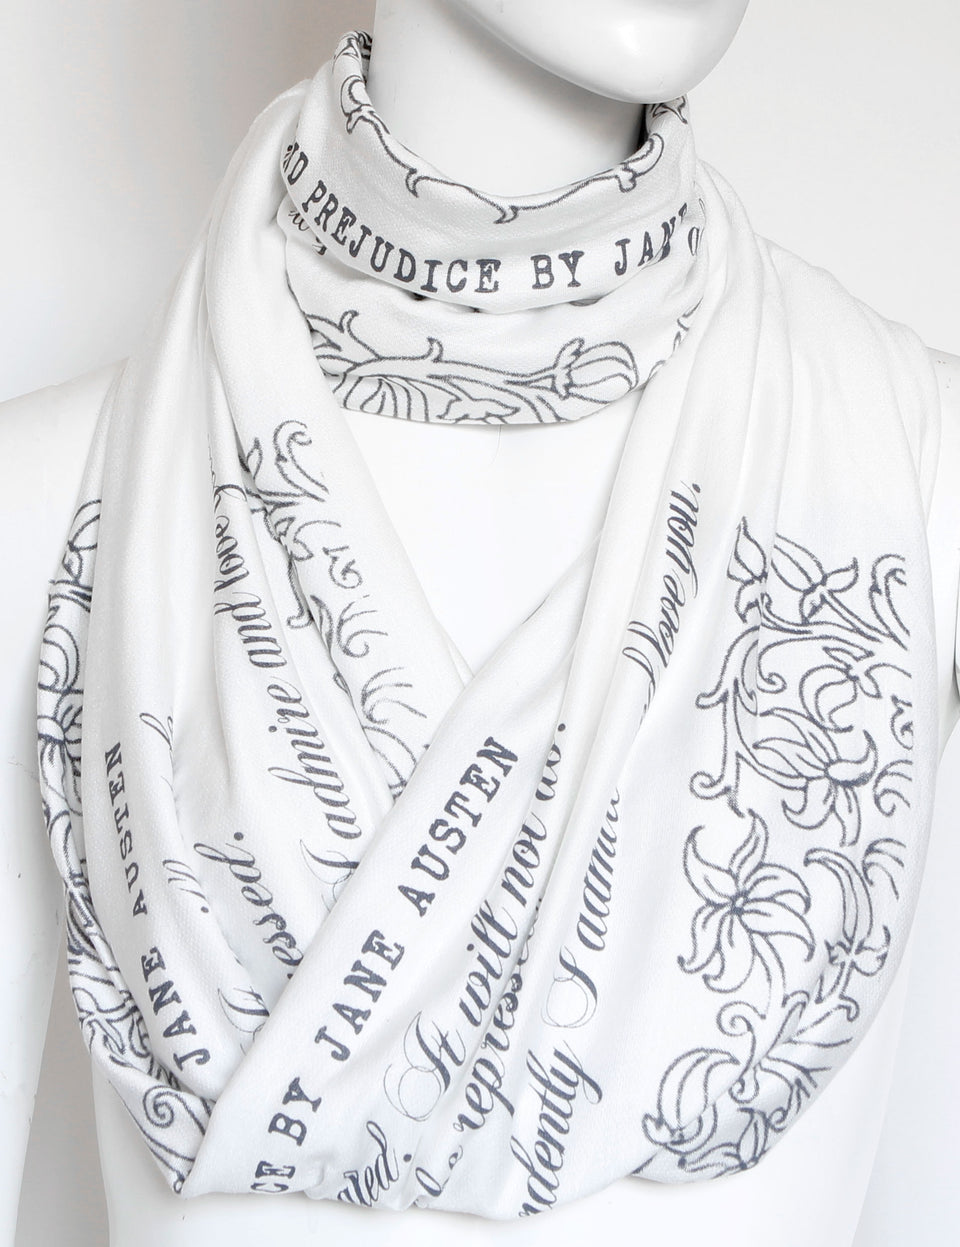 Pride and Prejudice book scarf by Jane Austen